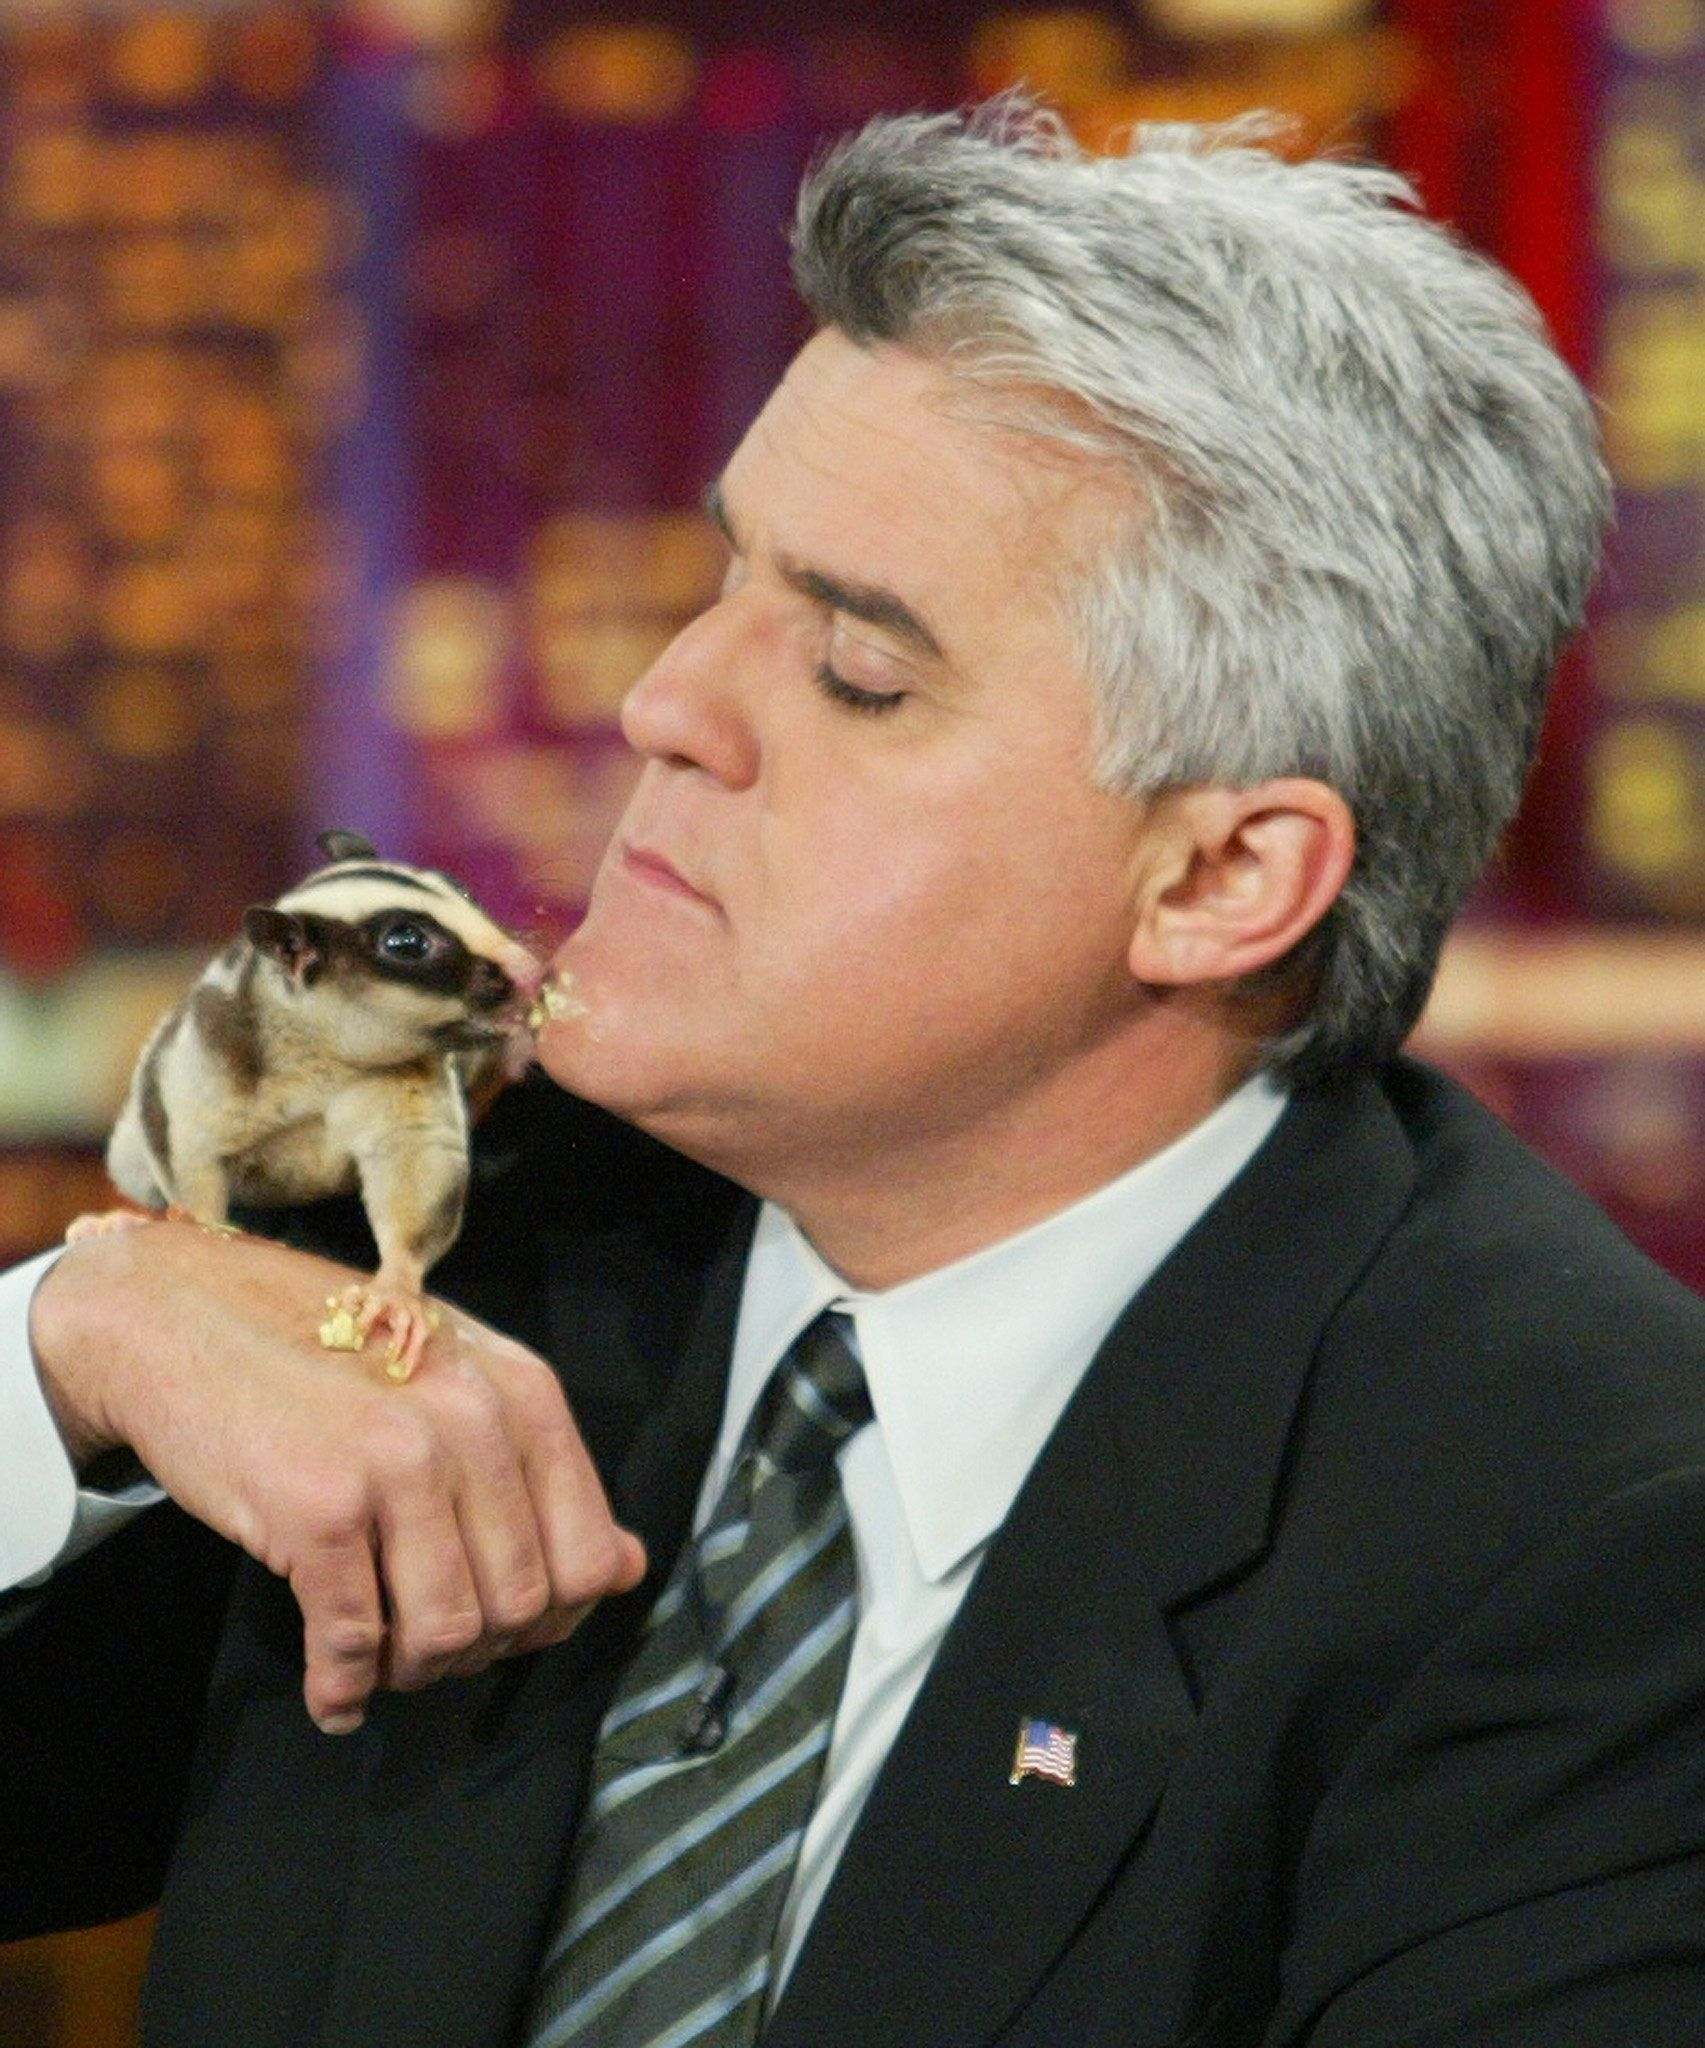 Jay Leno, pictured here in 2003, may have played a large role in creating the enduring myth.